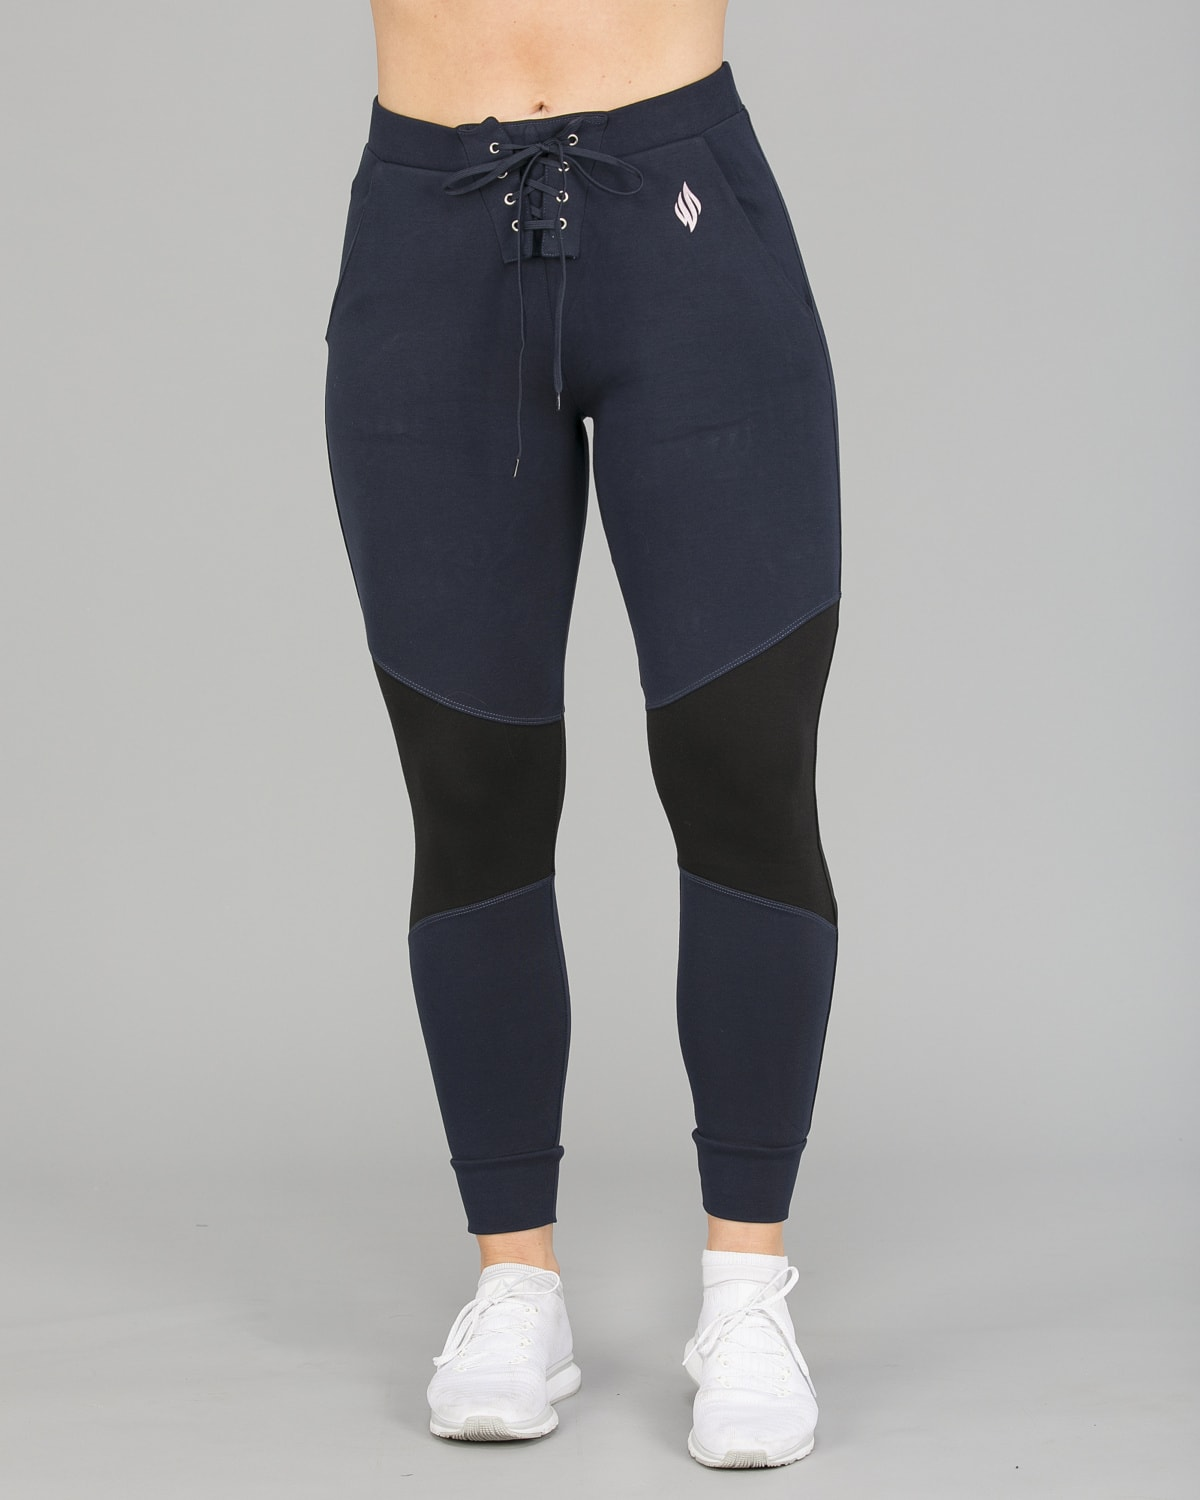 We Are Fit Pearl Pant1